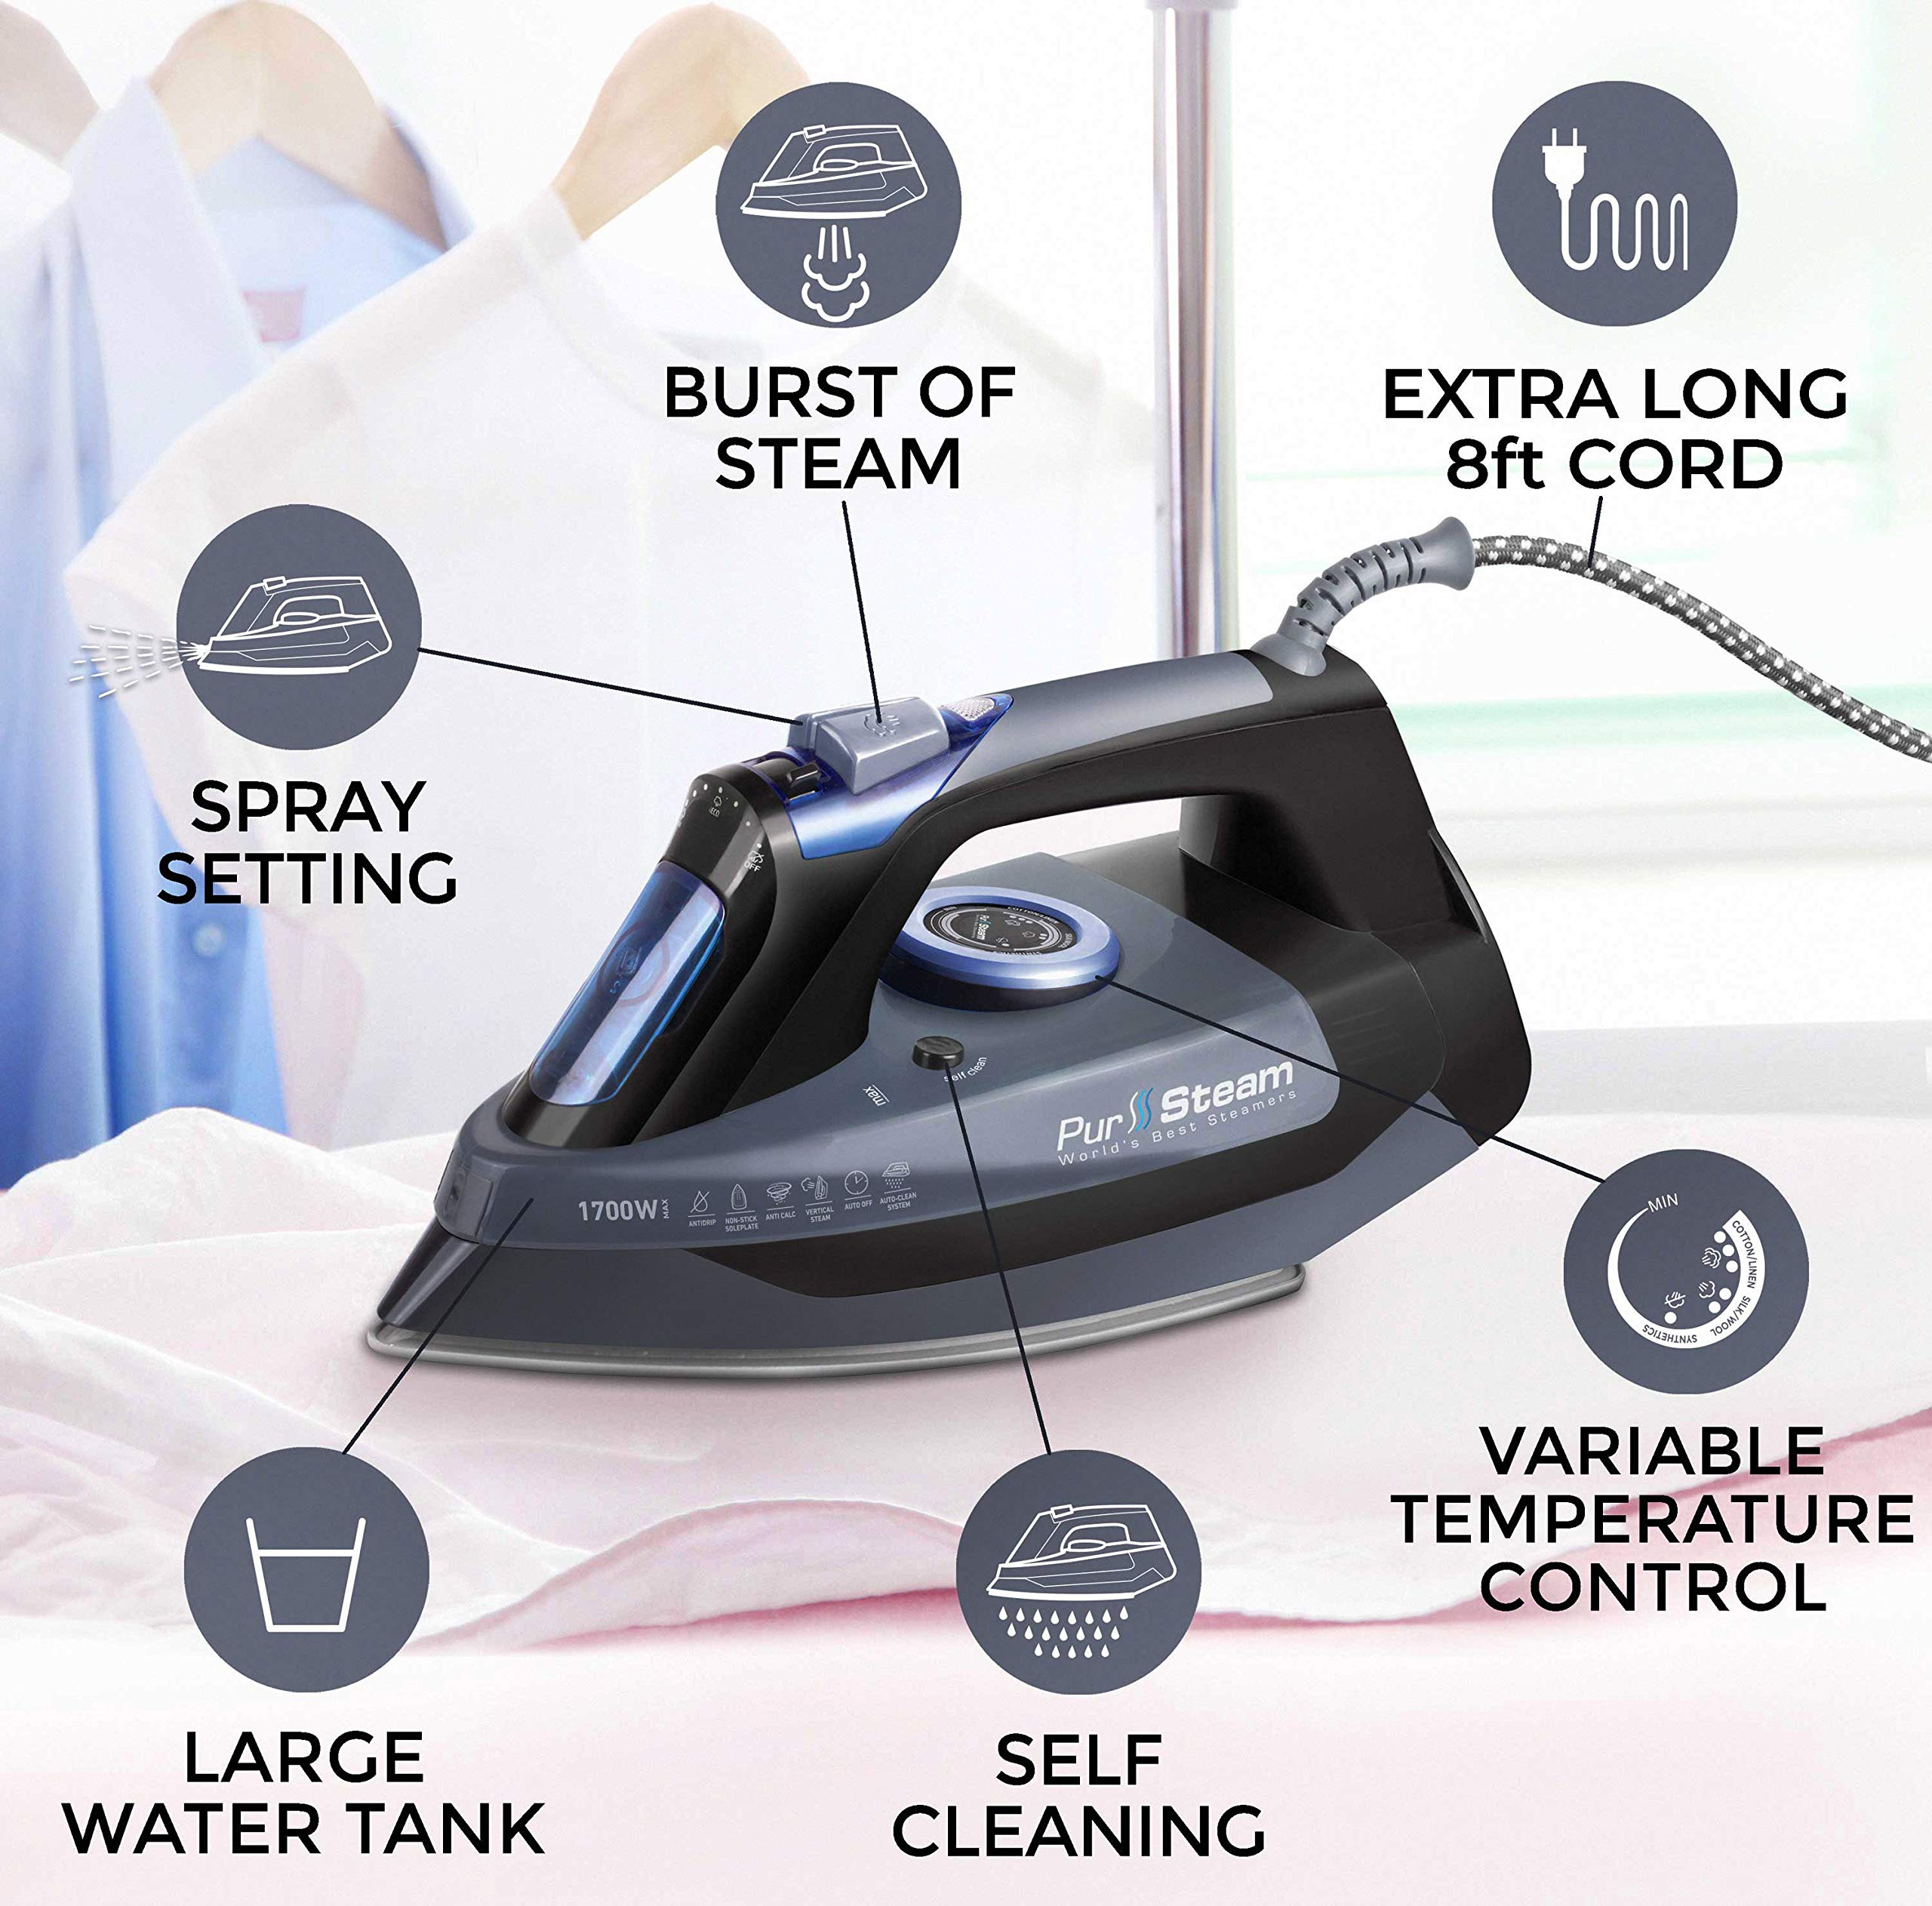 Professional Grade 1700W Steam Iron for Clothes with Rapid Even Heat Scratch Resistant Stainless Steel Sole Plate, True Position Axial Aligned Steam Holes, Self-Cleaning Function + Thermostat Dial by PurSteam World's Best Steamers (Image #2)